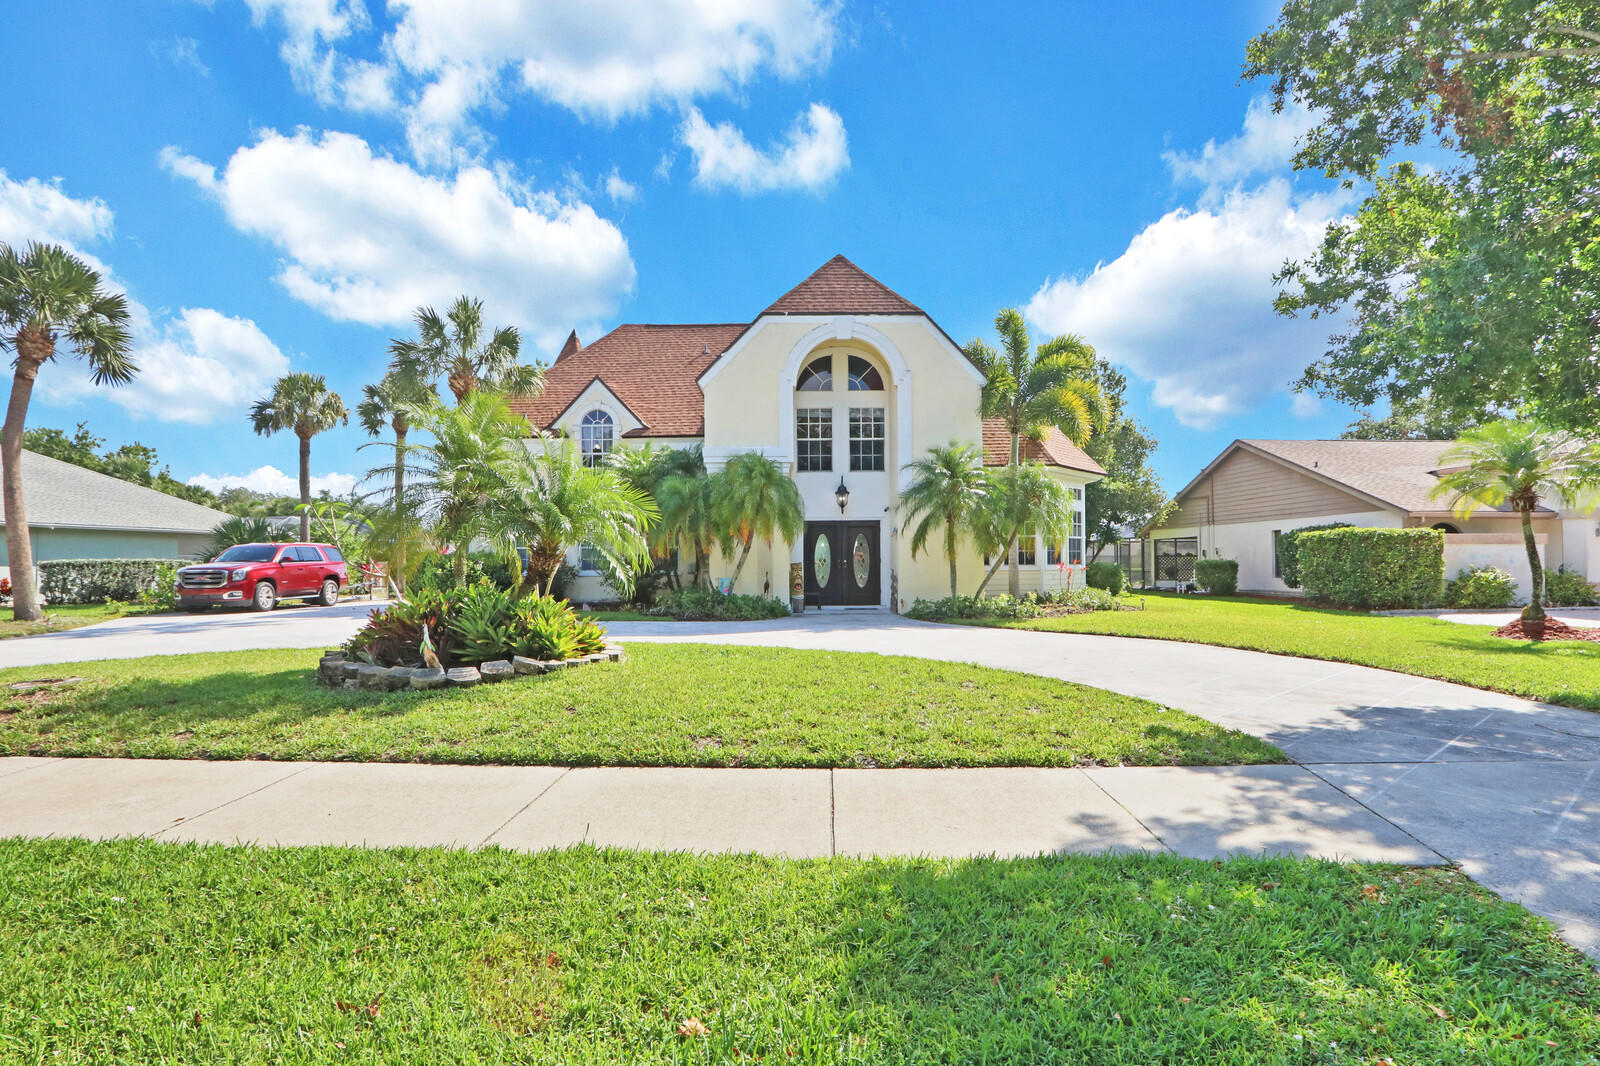 Home for sale in Danforth Palm City Florida